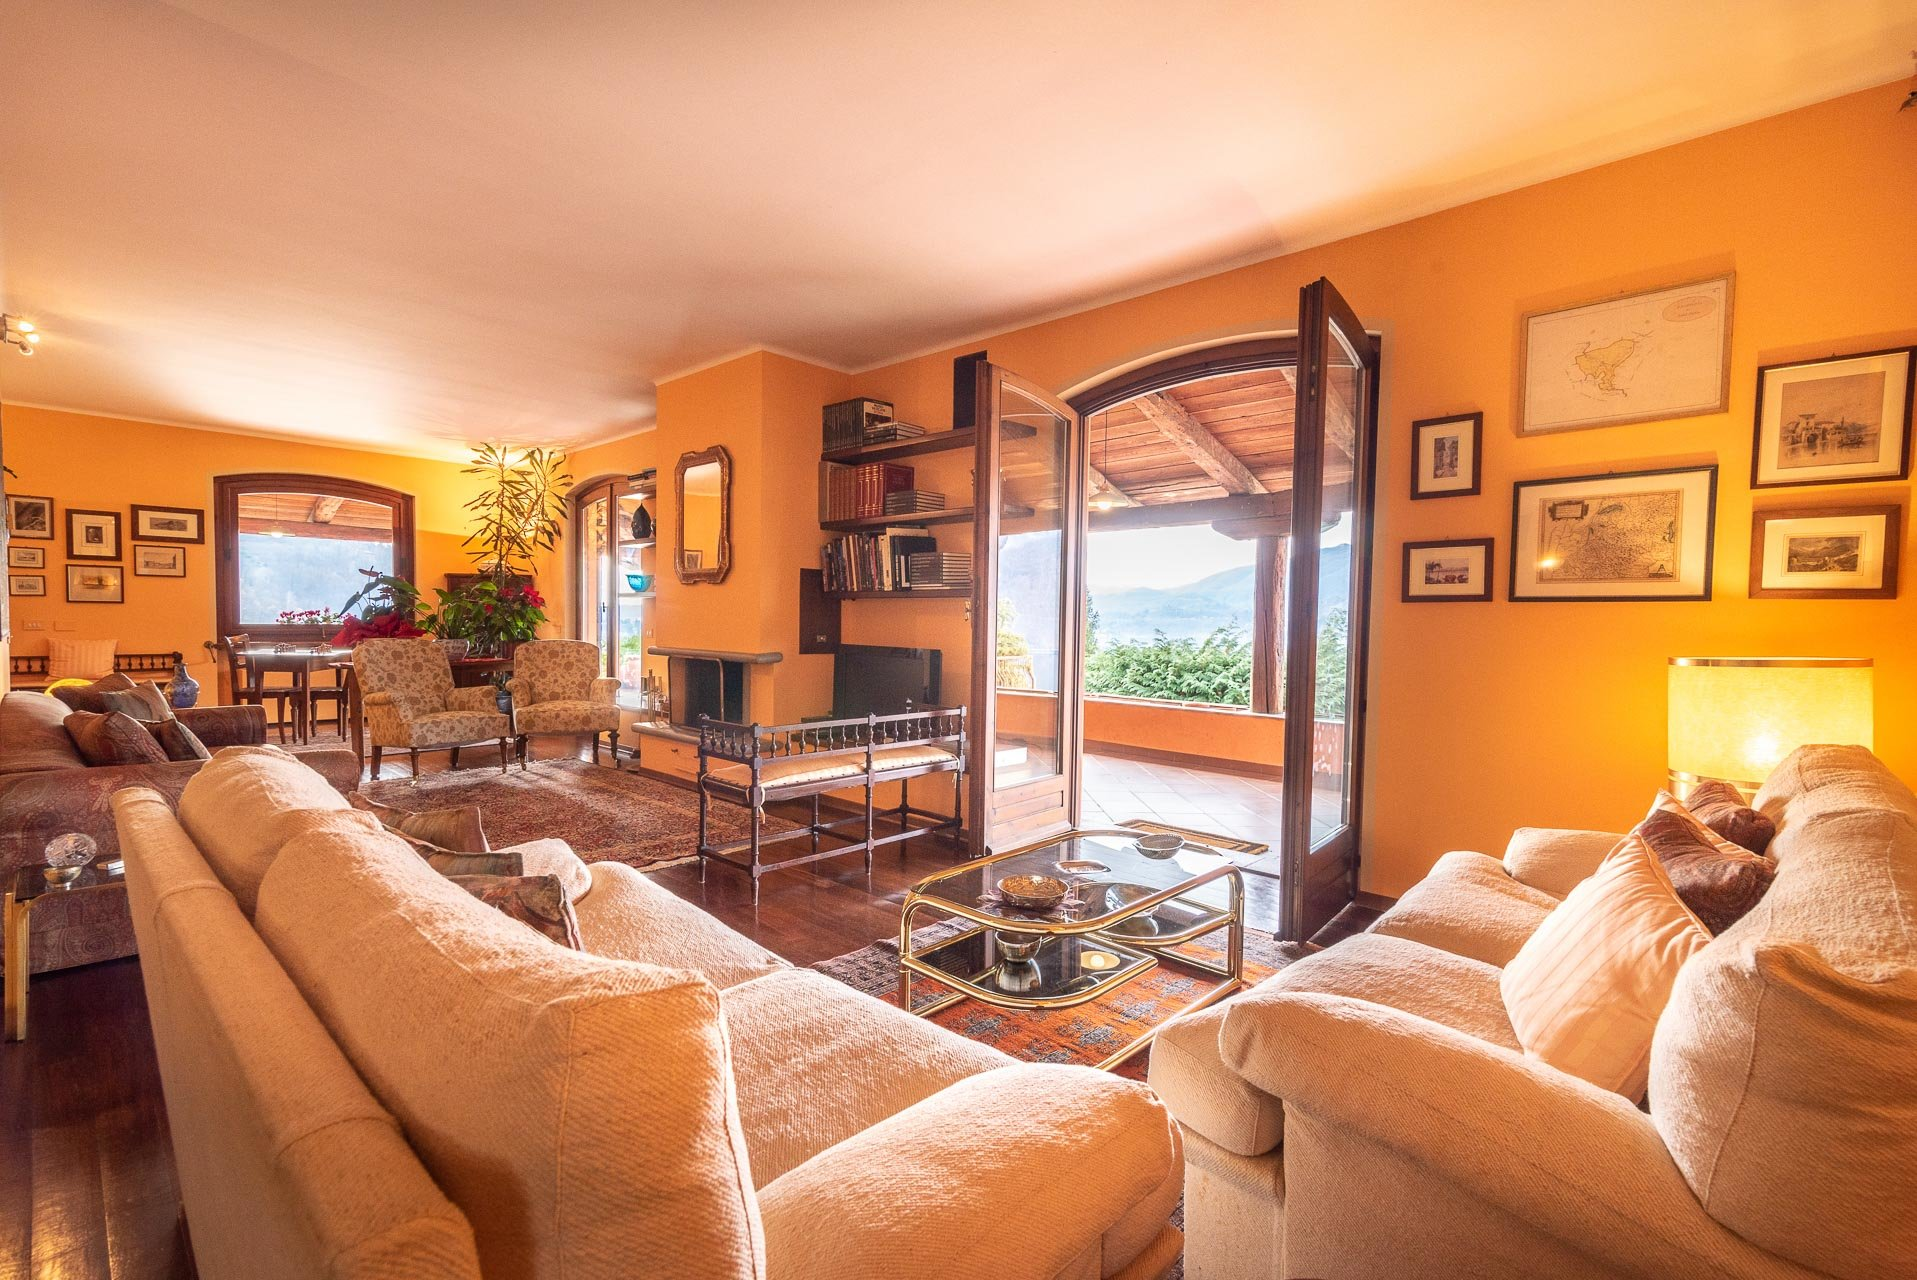 Elegant villa for sale in Pettenasco on Lake Orta - elegant living room